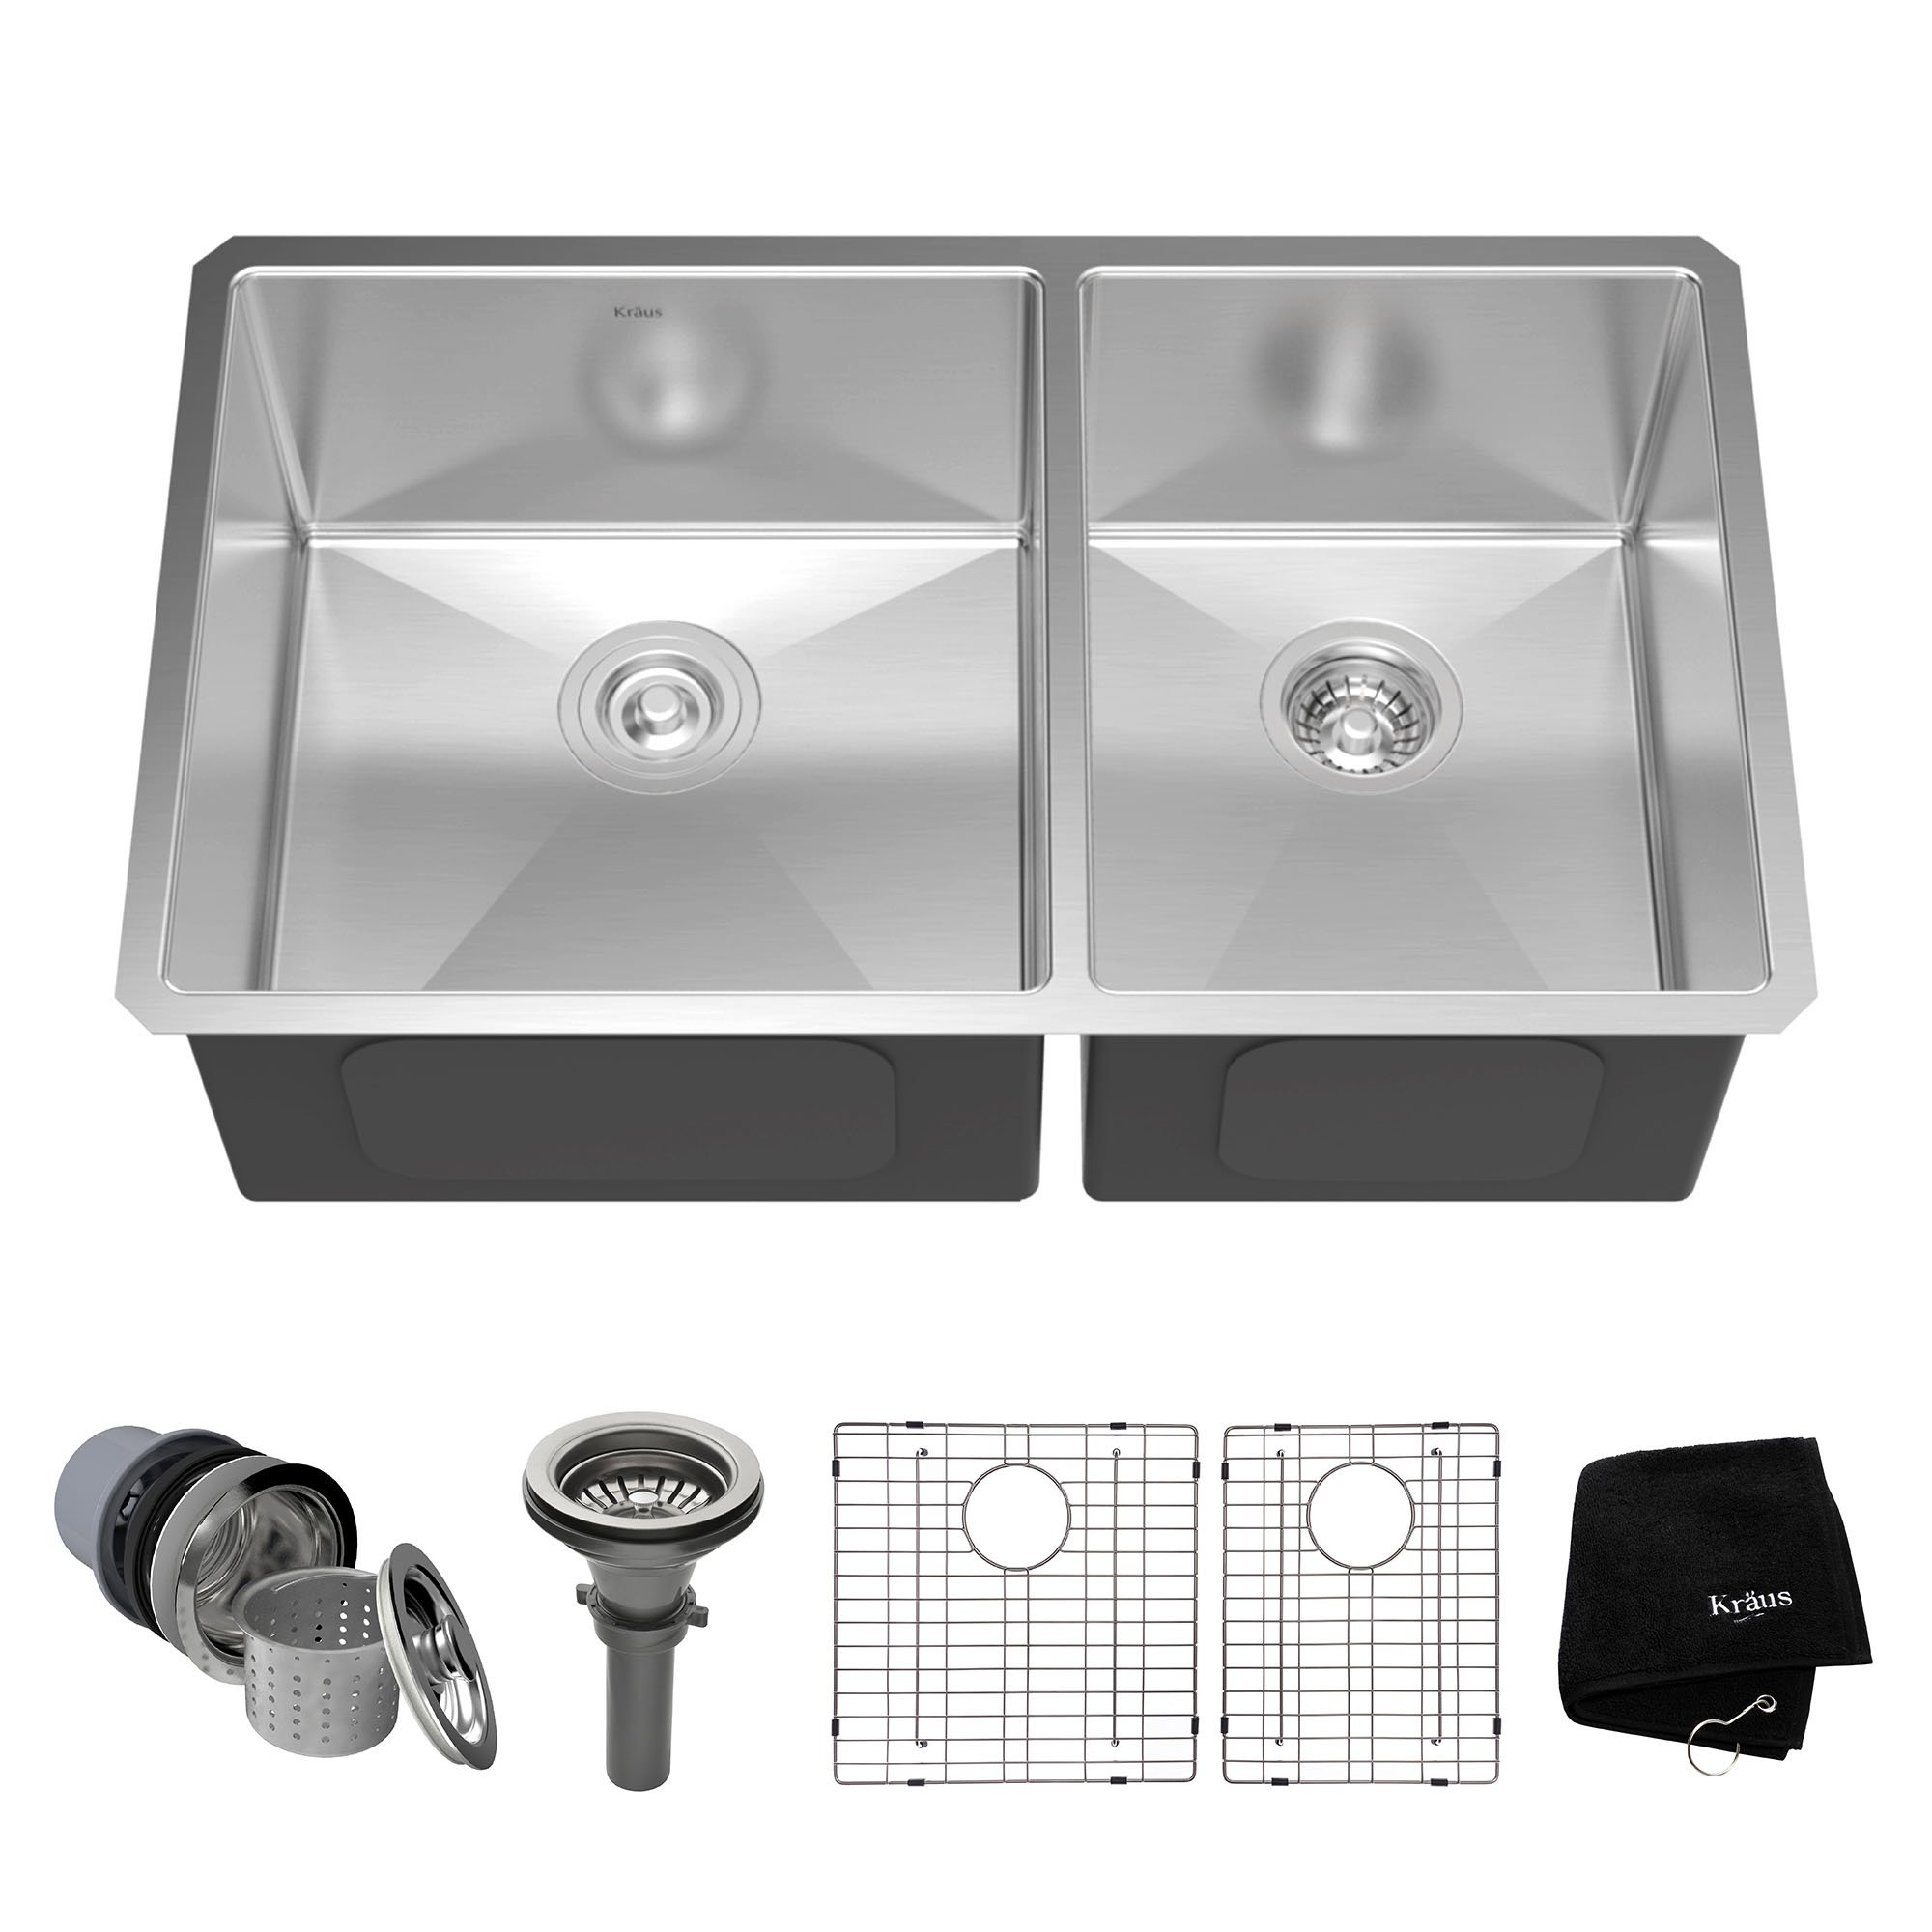 Kraus KHU103-33 33 inch Undermount 60/40 Double Bowl 16 gauge Stainless Steel Kitchen Sink by Kraus